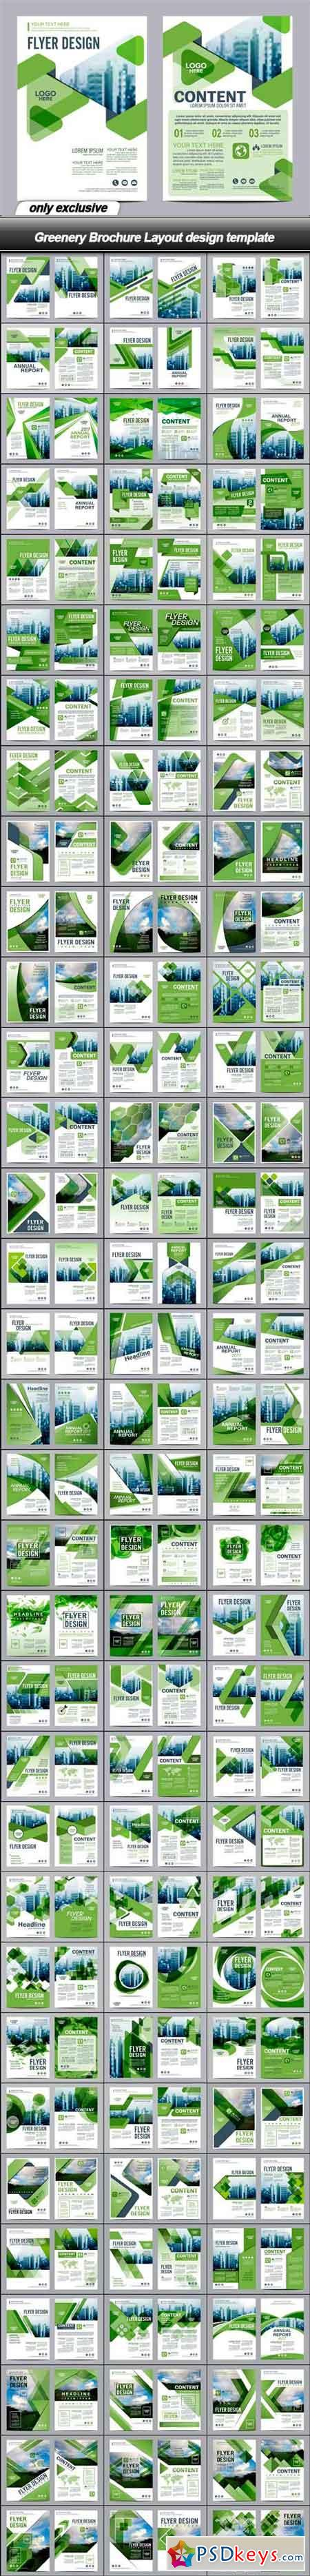 Greenery Brochure Layout design template - 100 EPS